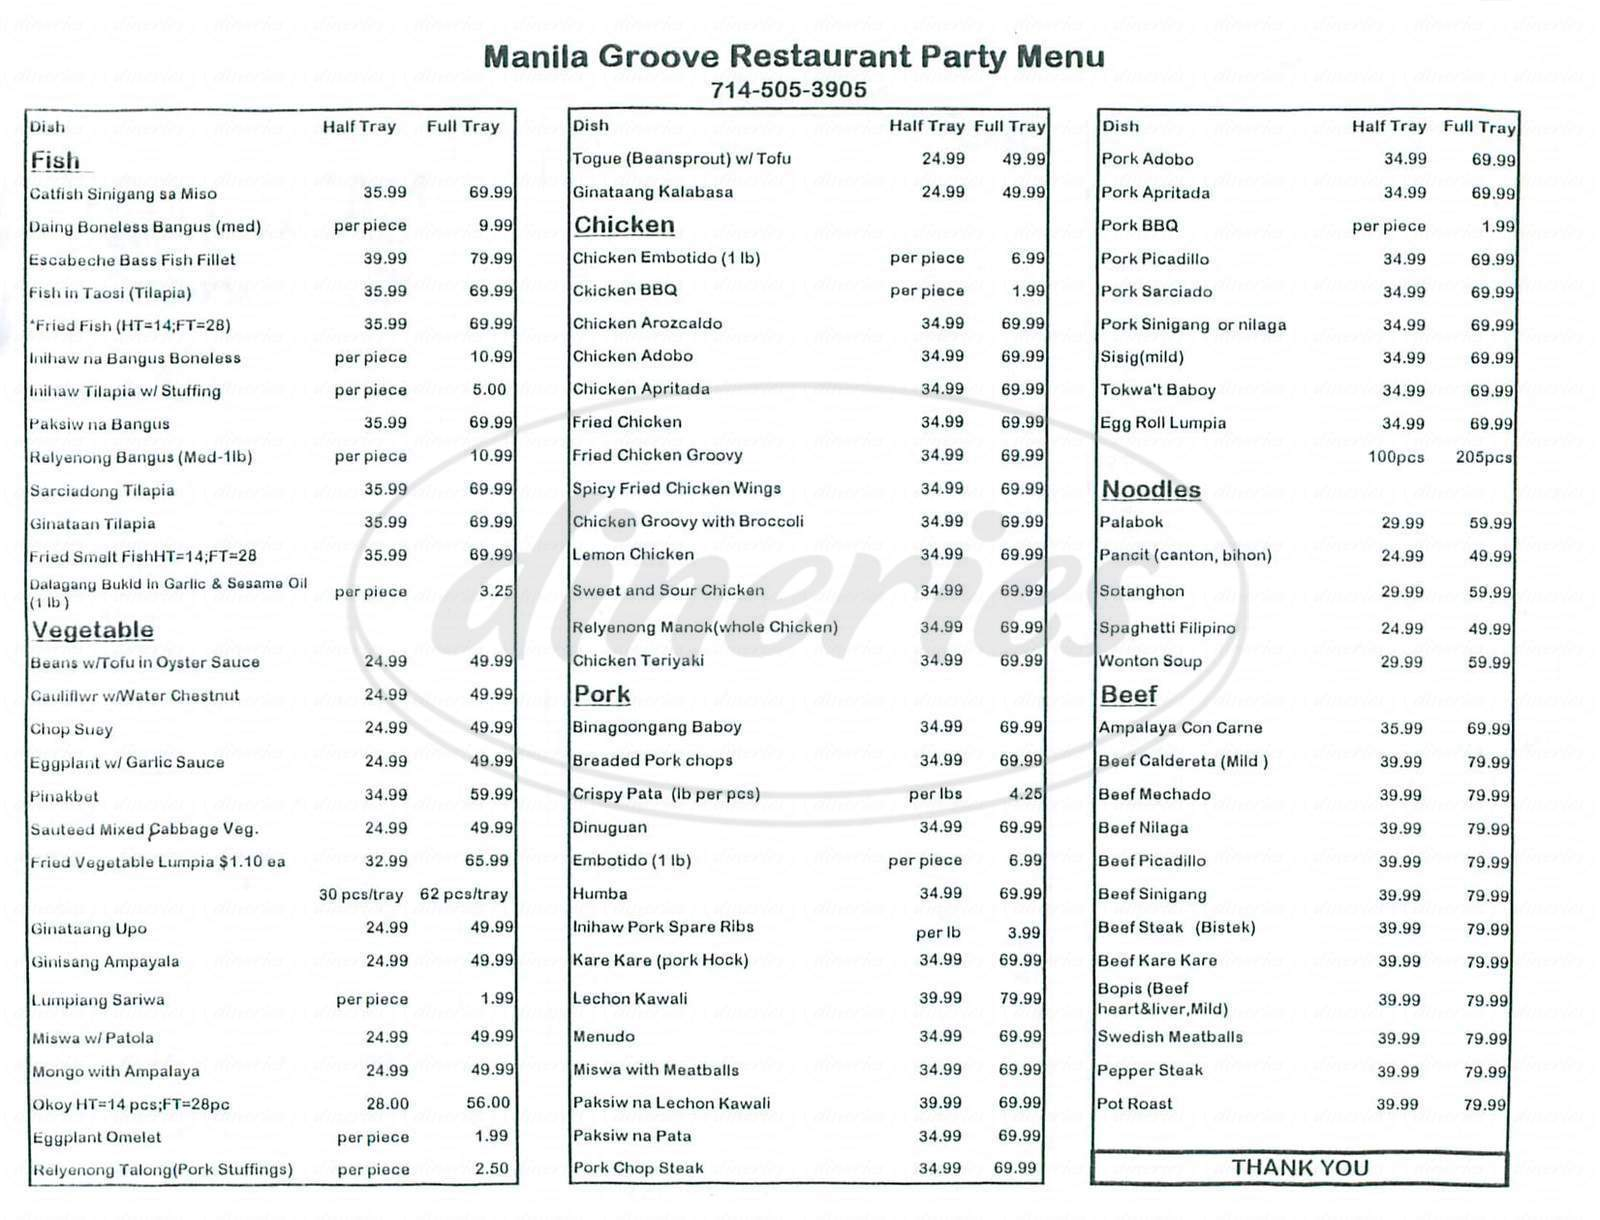 menu for Manila Groove Restaurant